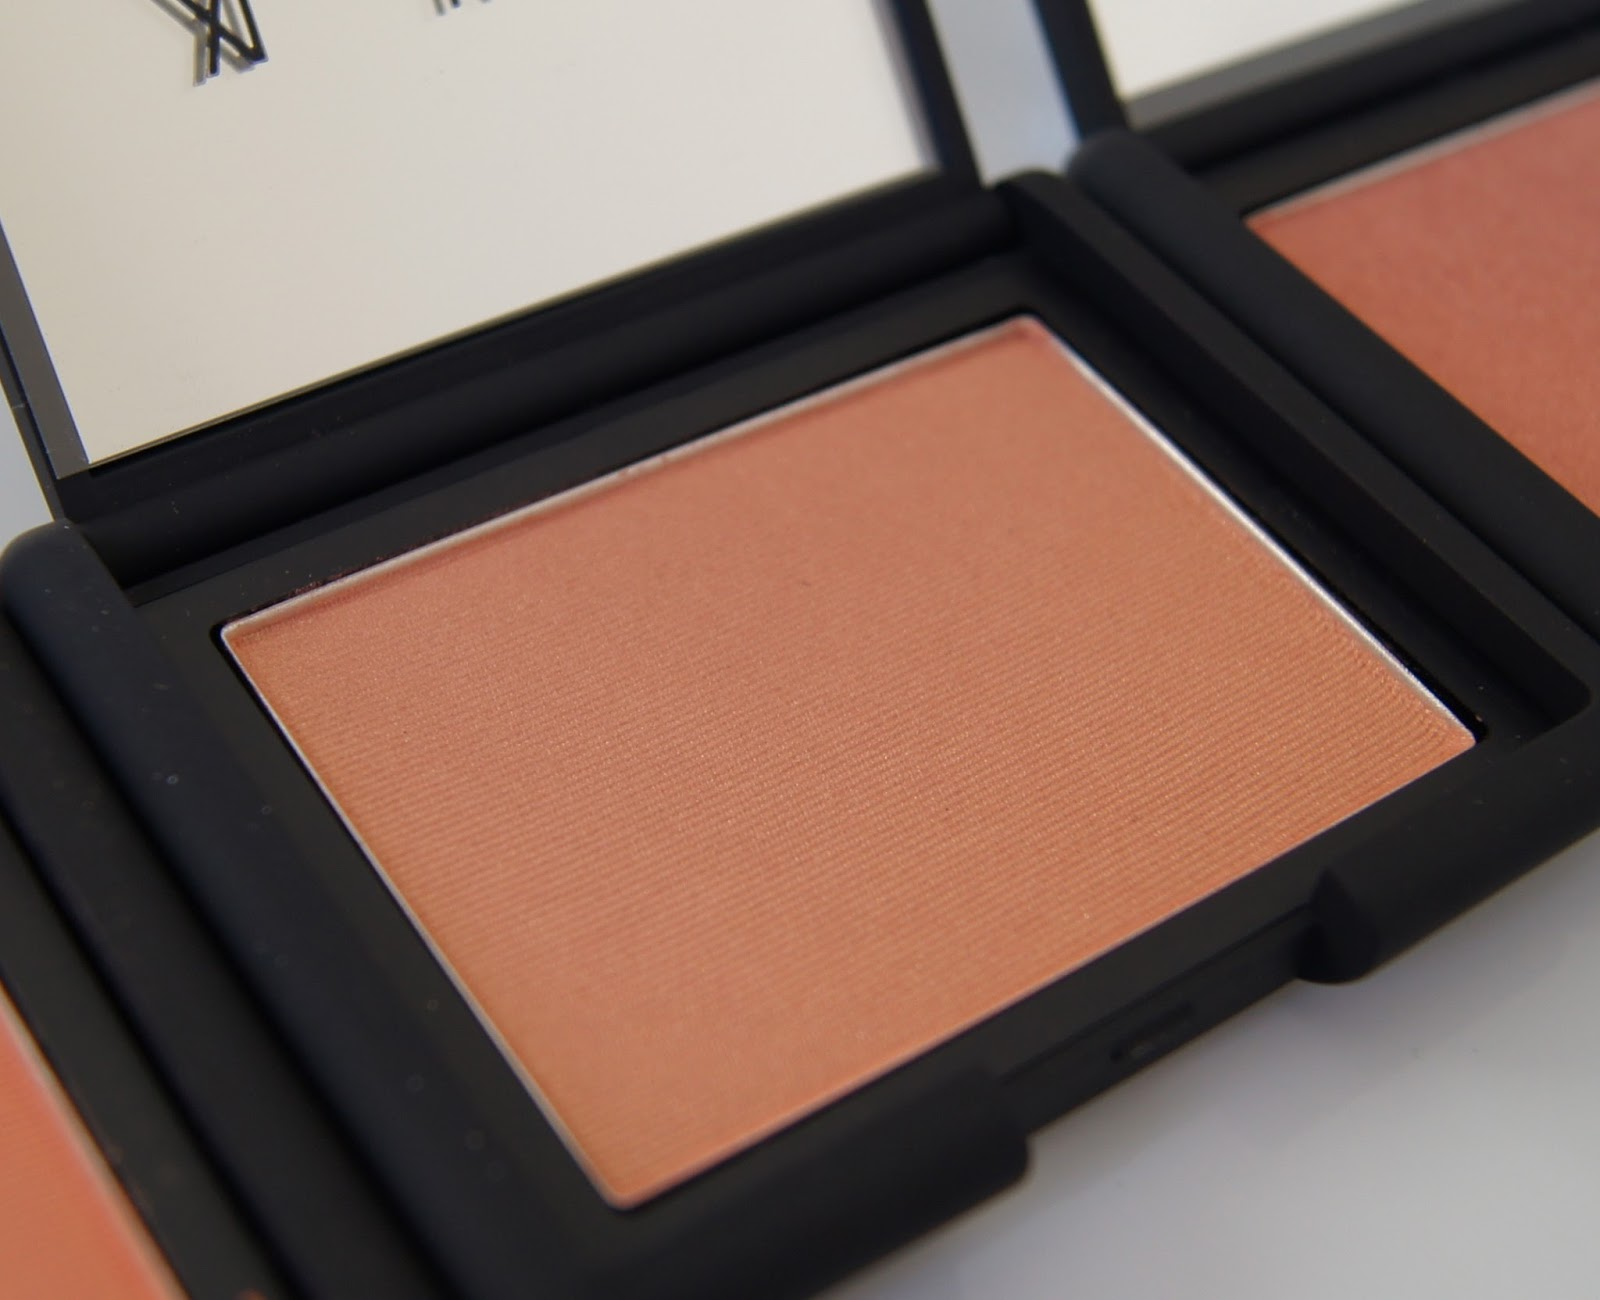 NARS Lustre review